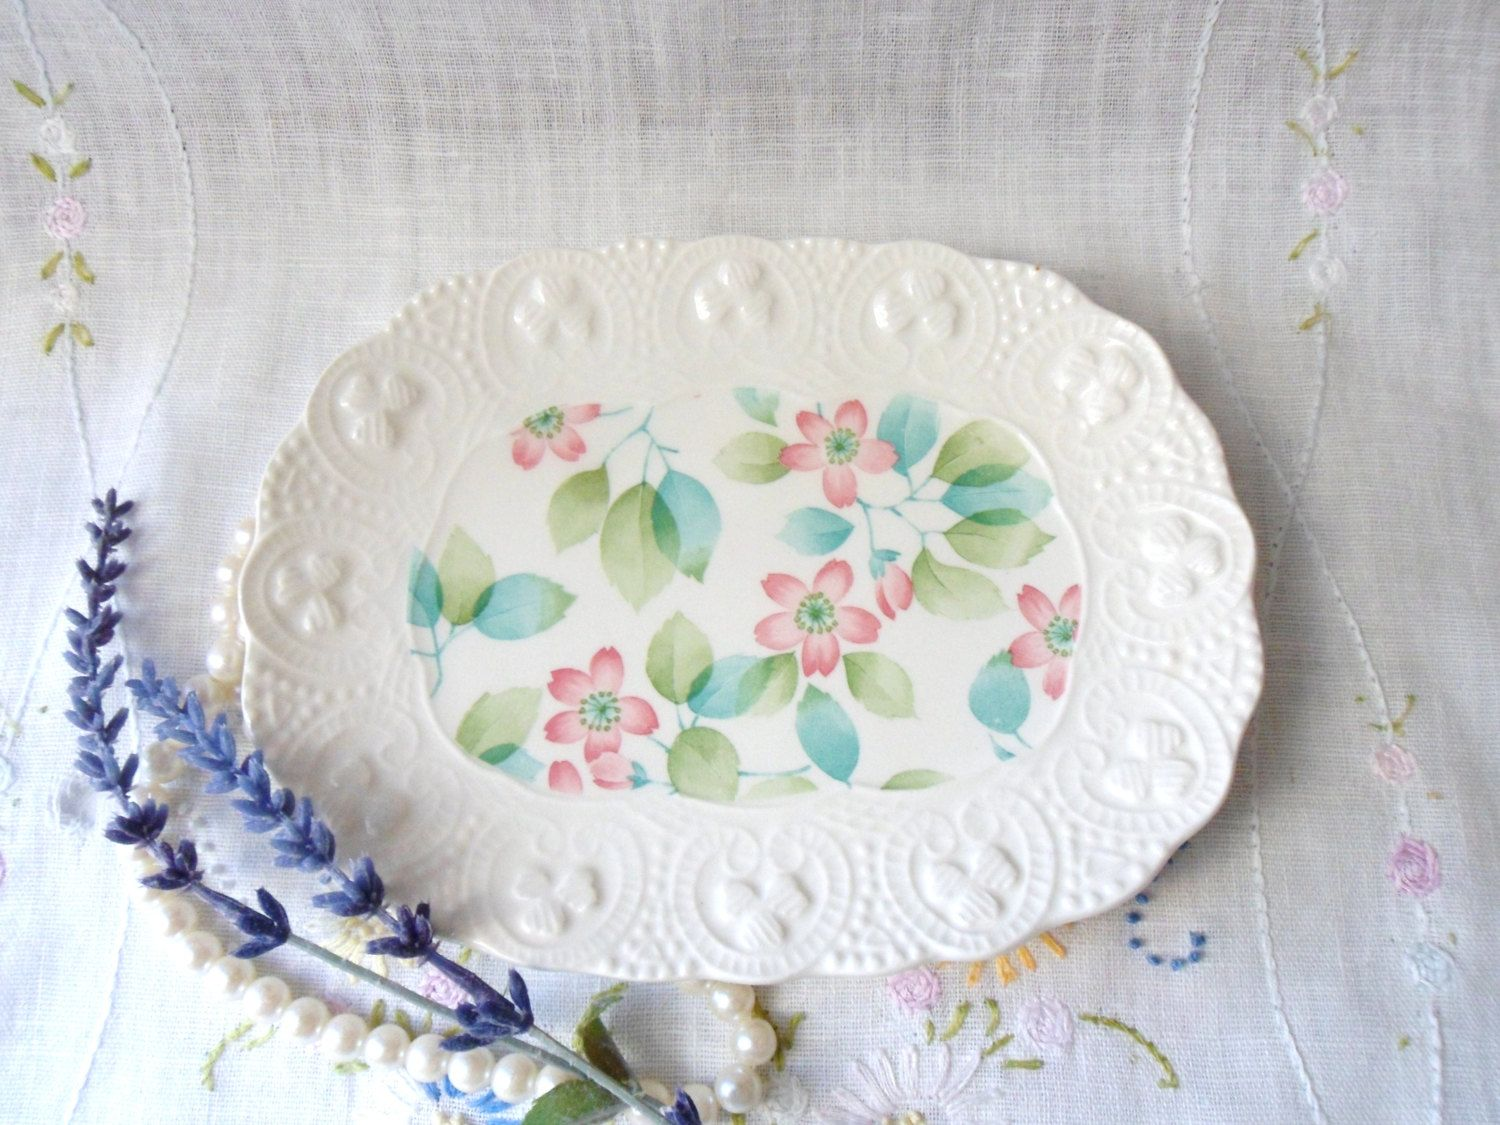 Cute Flowered Serving Dish, Shabby Chic Soap Dish, Oval Bread Plate